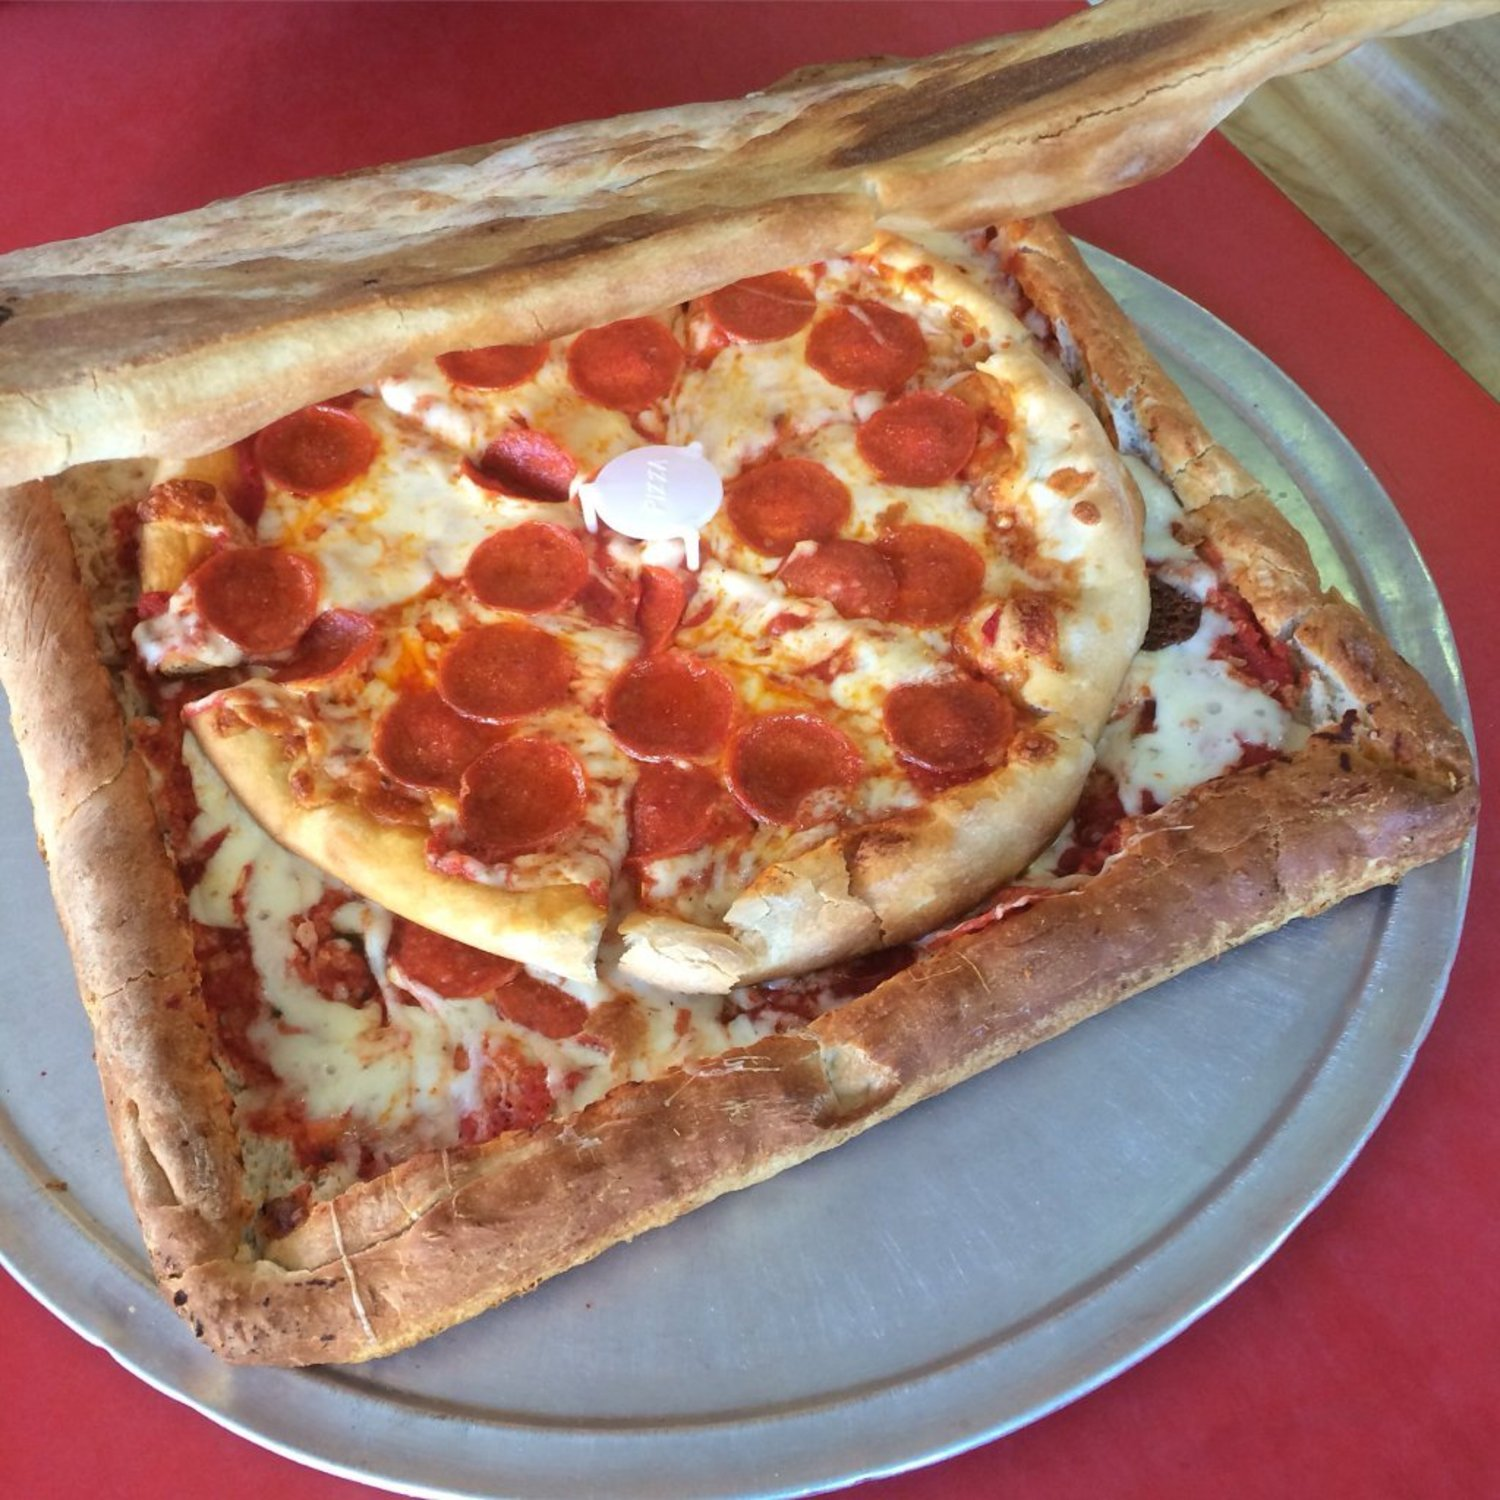 Introducing The PIZZA BOX PIZZA! A pizza box made entirely out of pizza! No waste, 100% pizza and 100% delicious. https://t.co/2KxxndlK4Z